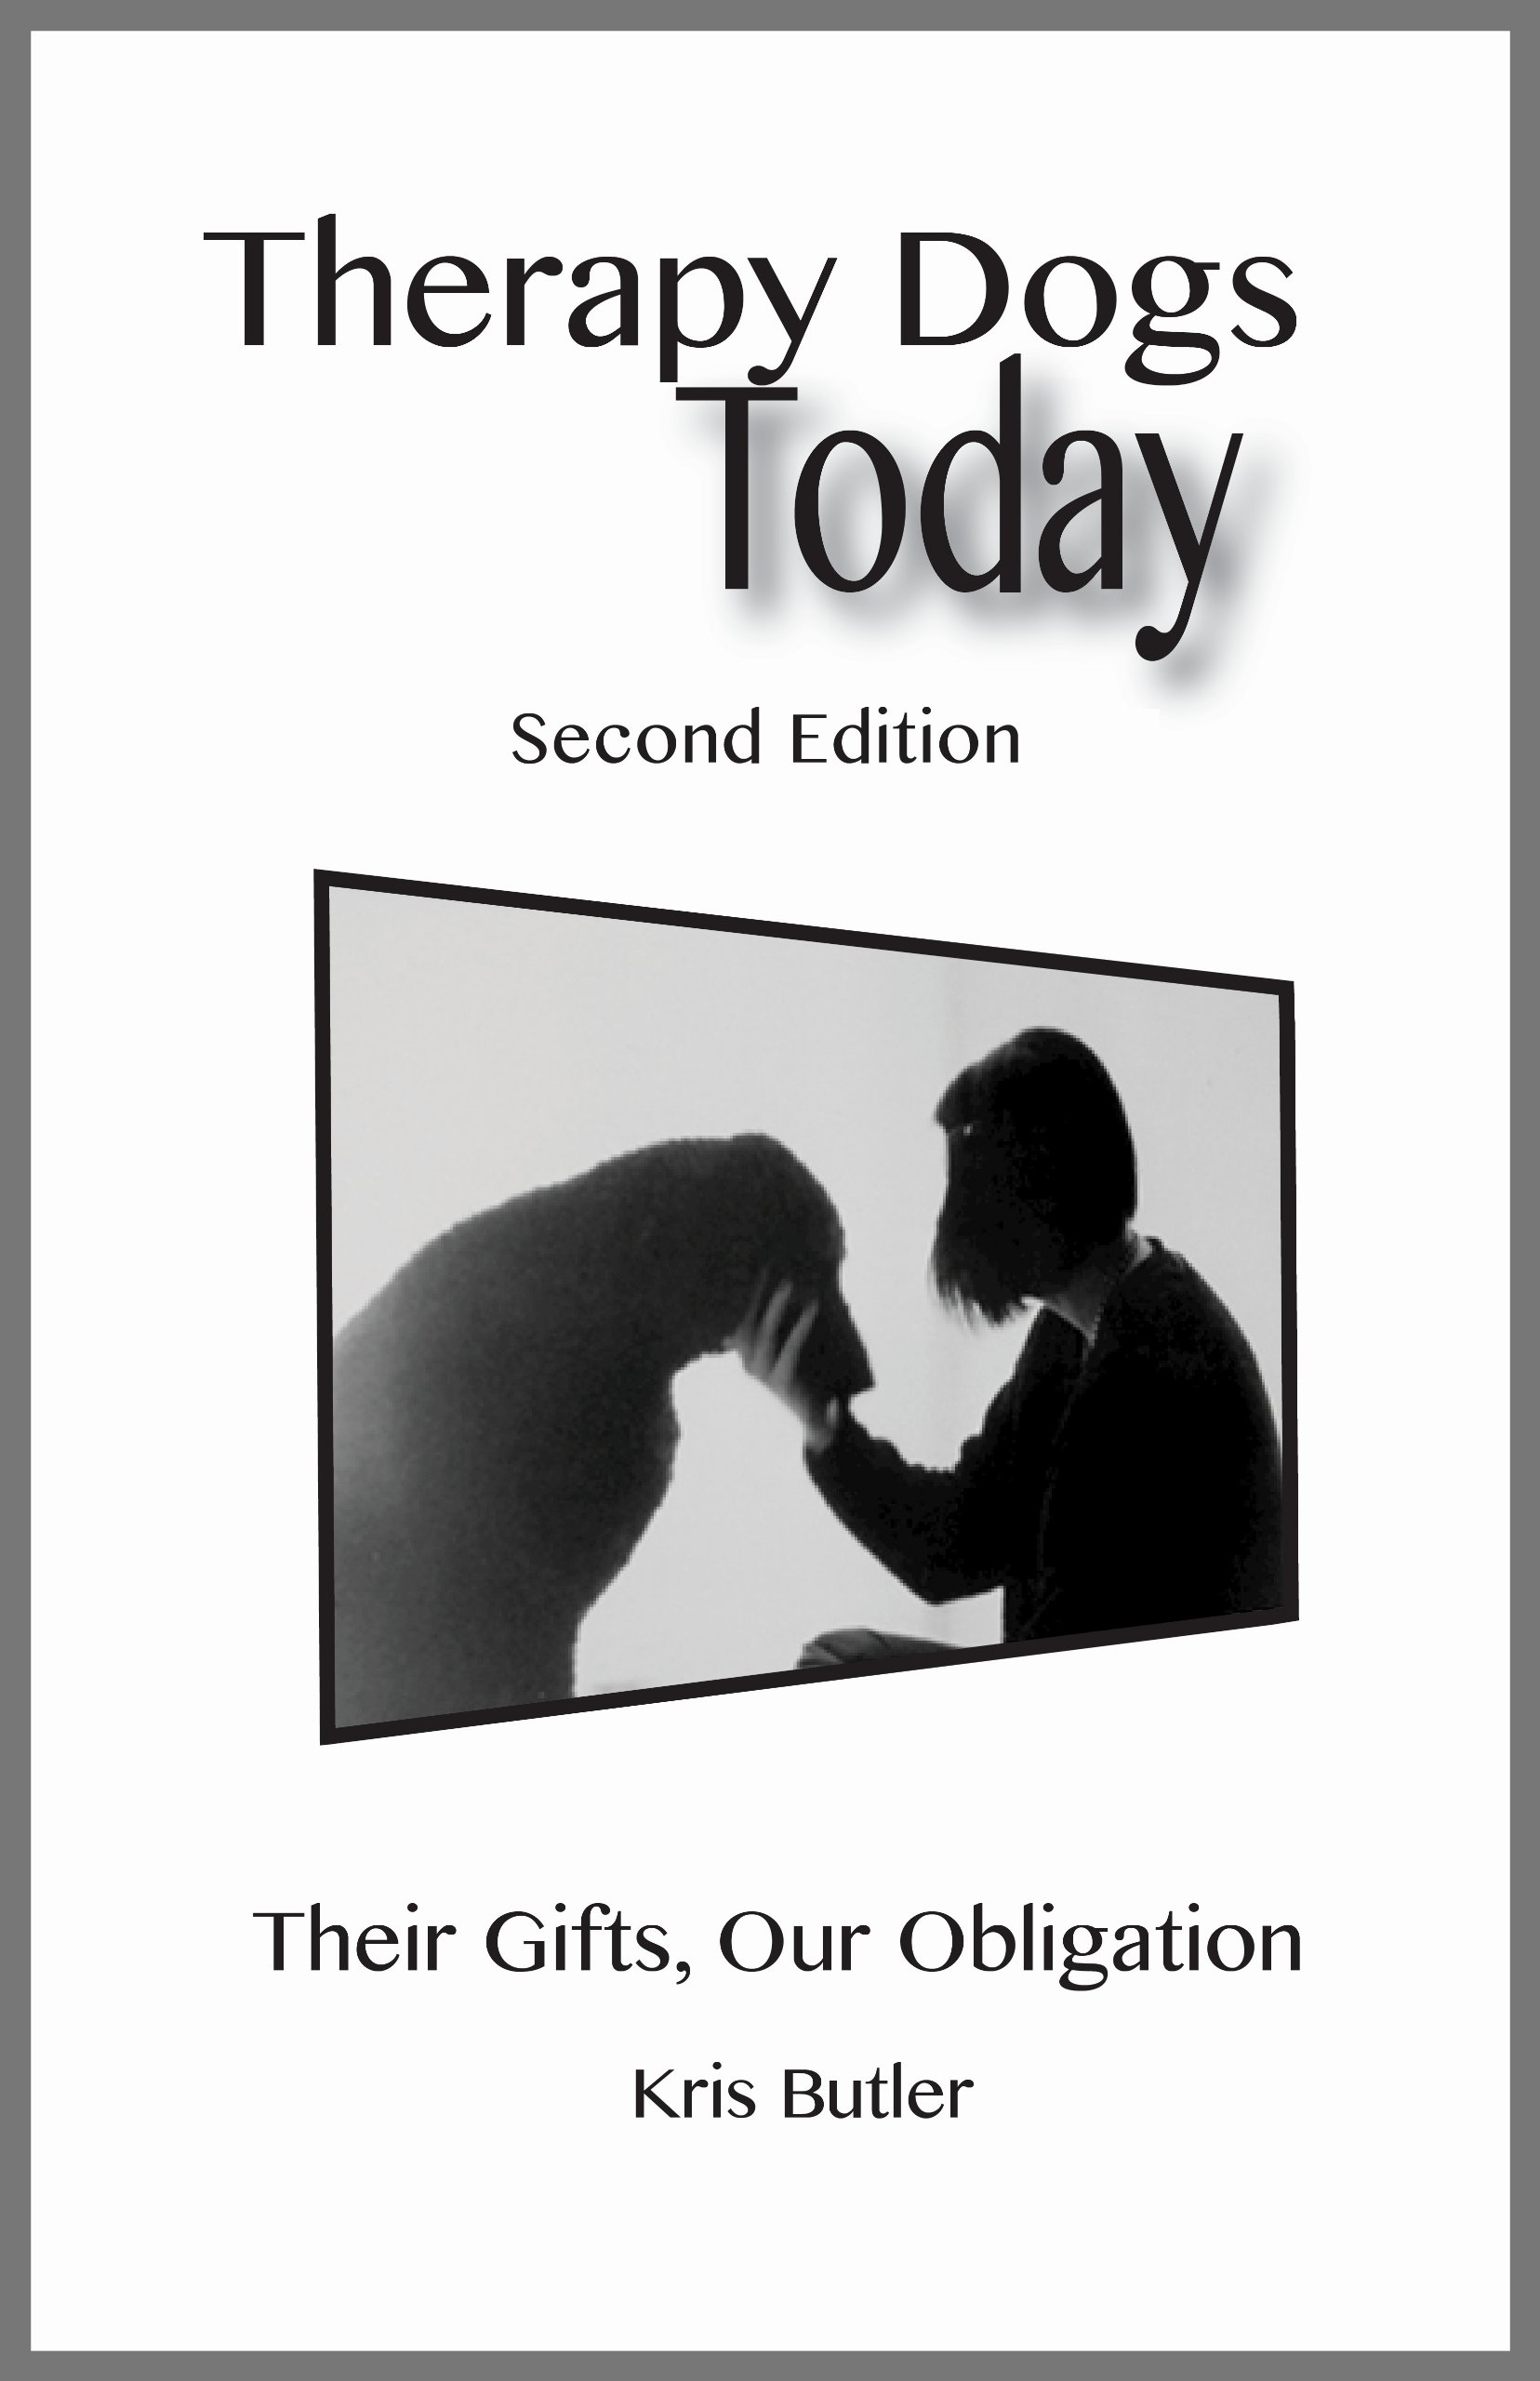 Therapy Dogs Today Obligation Second product image